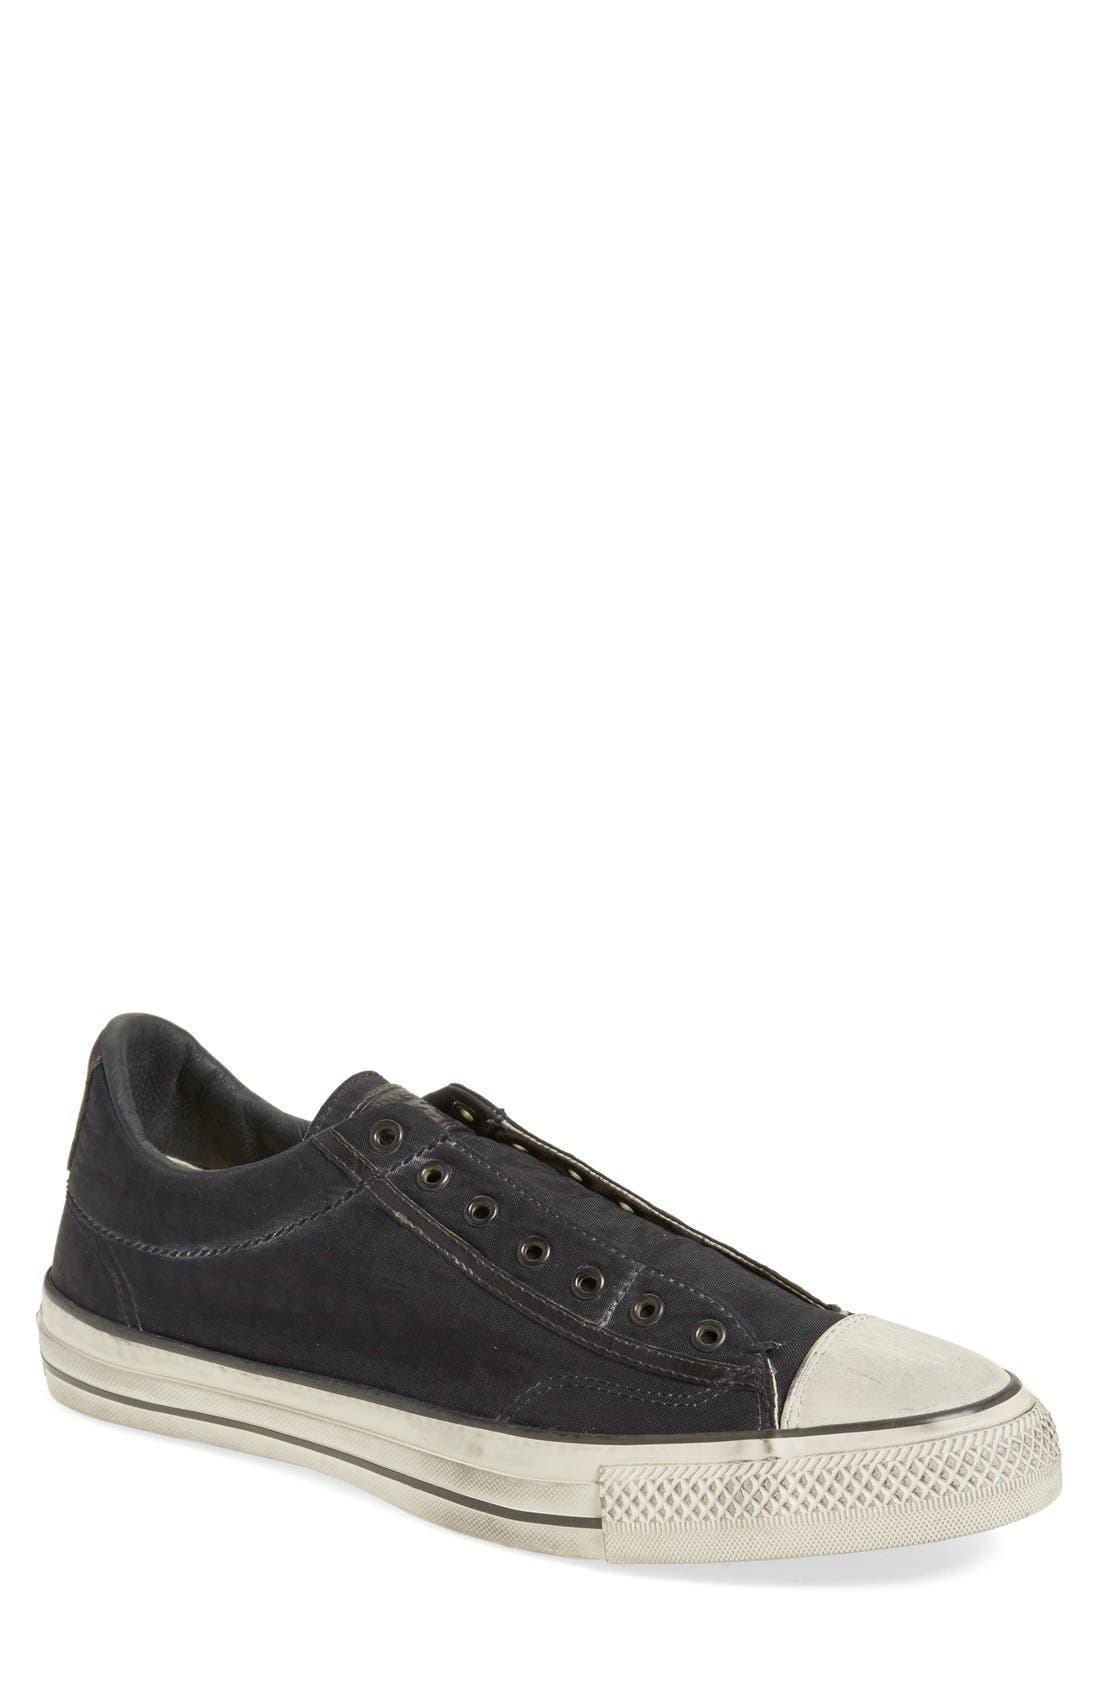 Main Image - Converse by John Varvatos 'Vintage' Sneaker (Men)